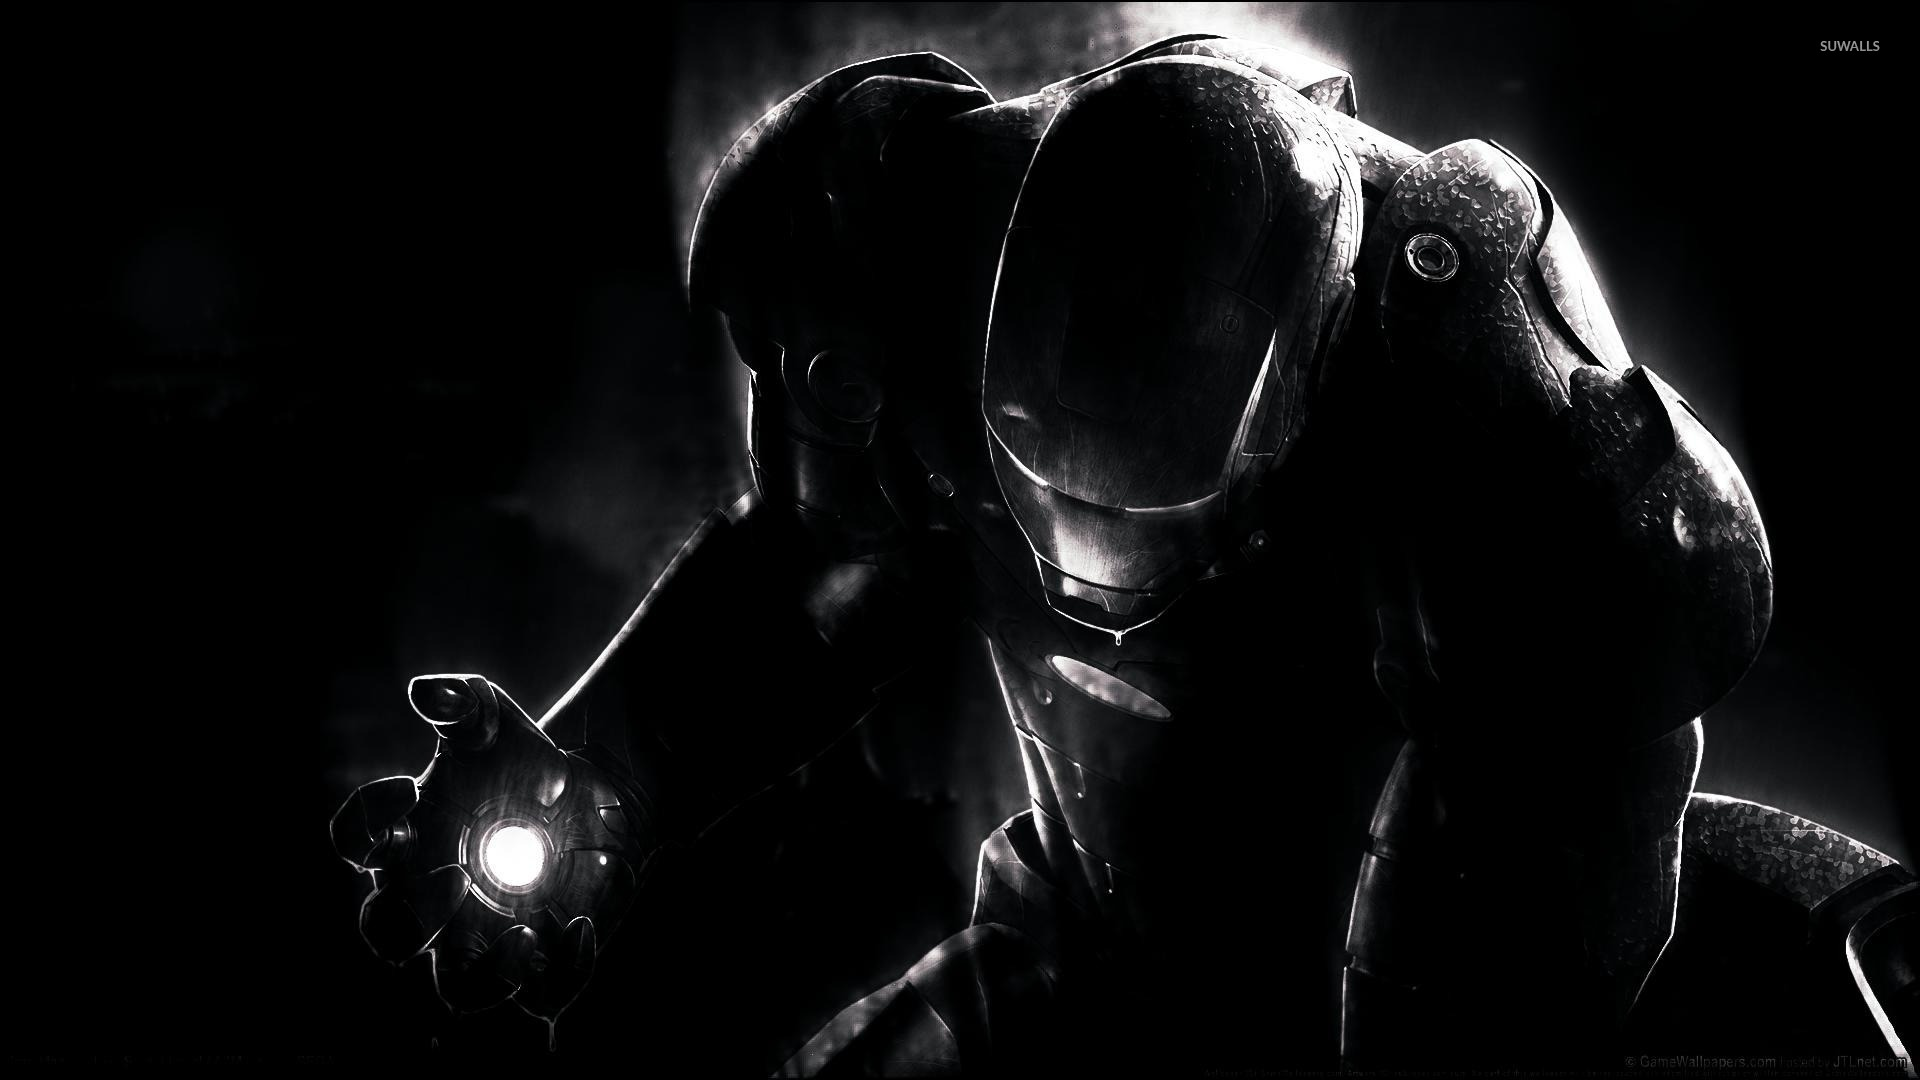 Iron Man The Avengers Wallpaper Movie Wallpapers 14310